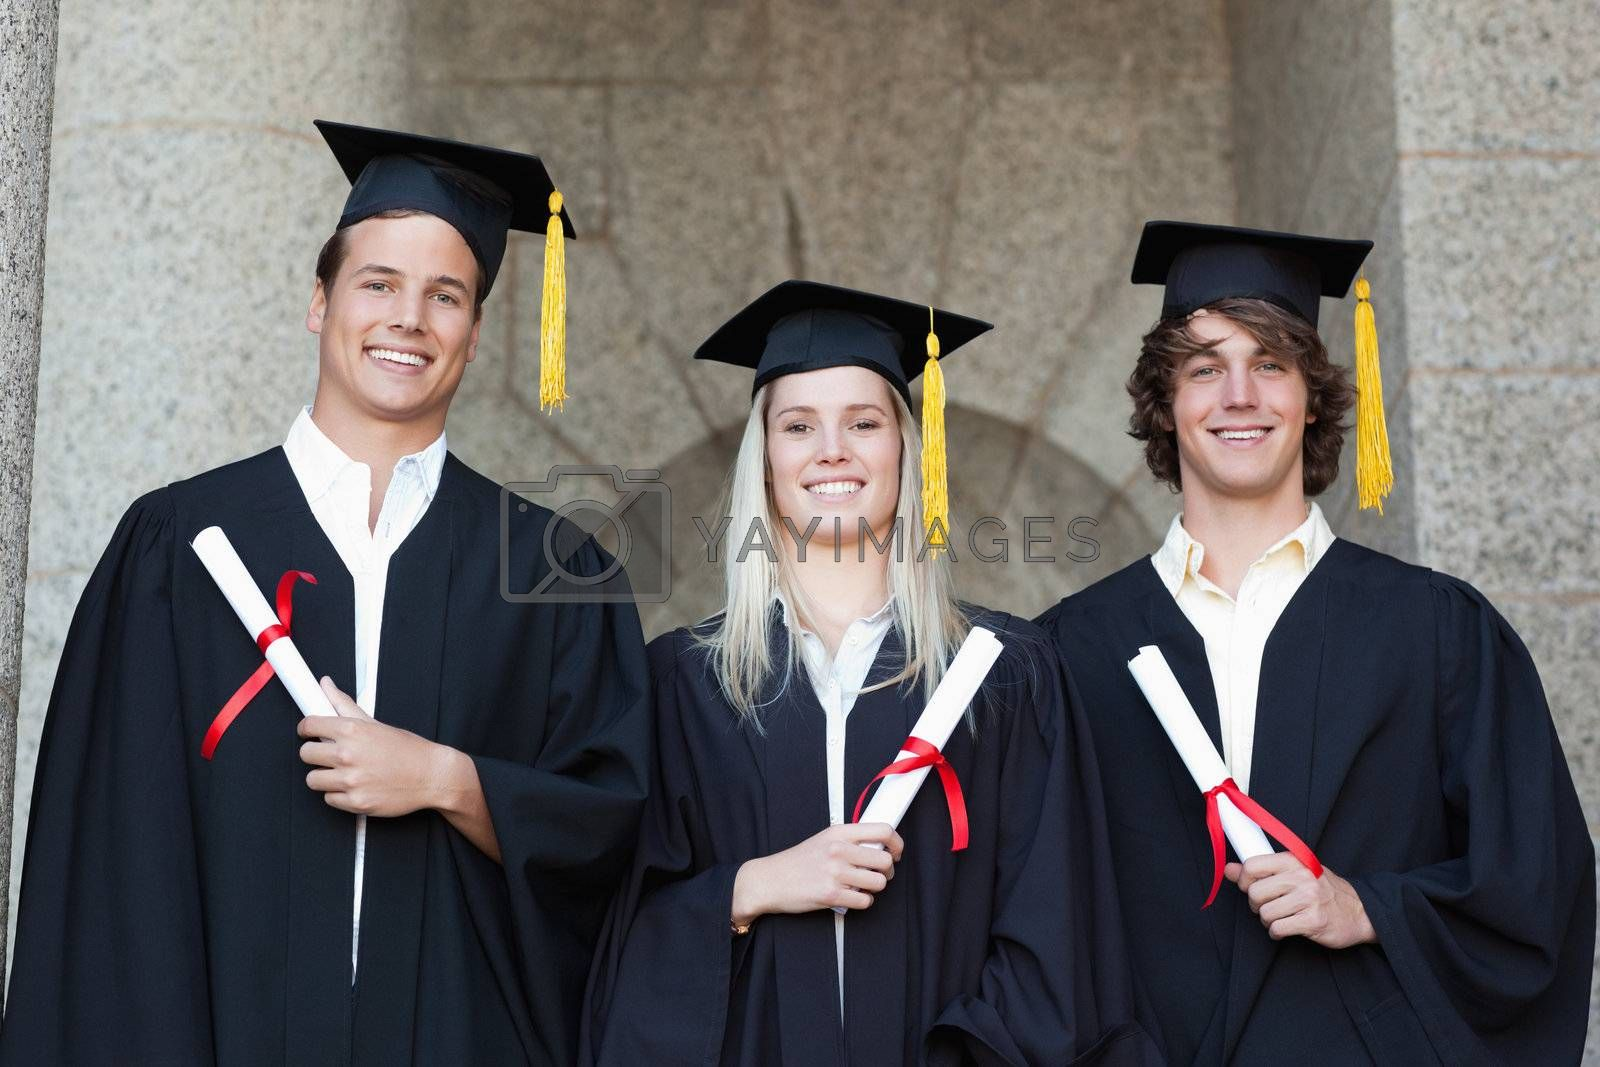 Graduates holding their diploma while posing with university in backgroung